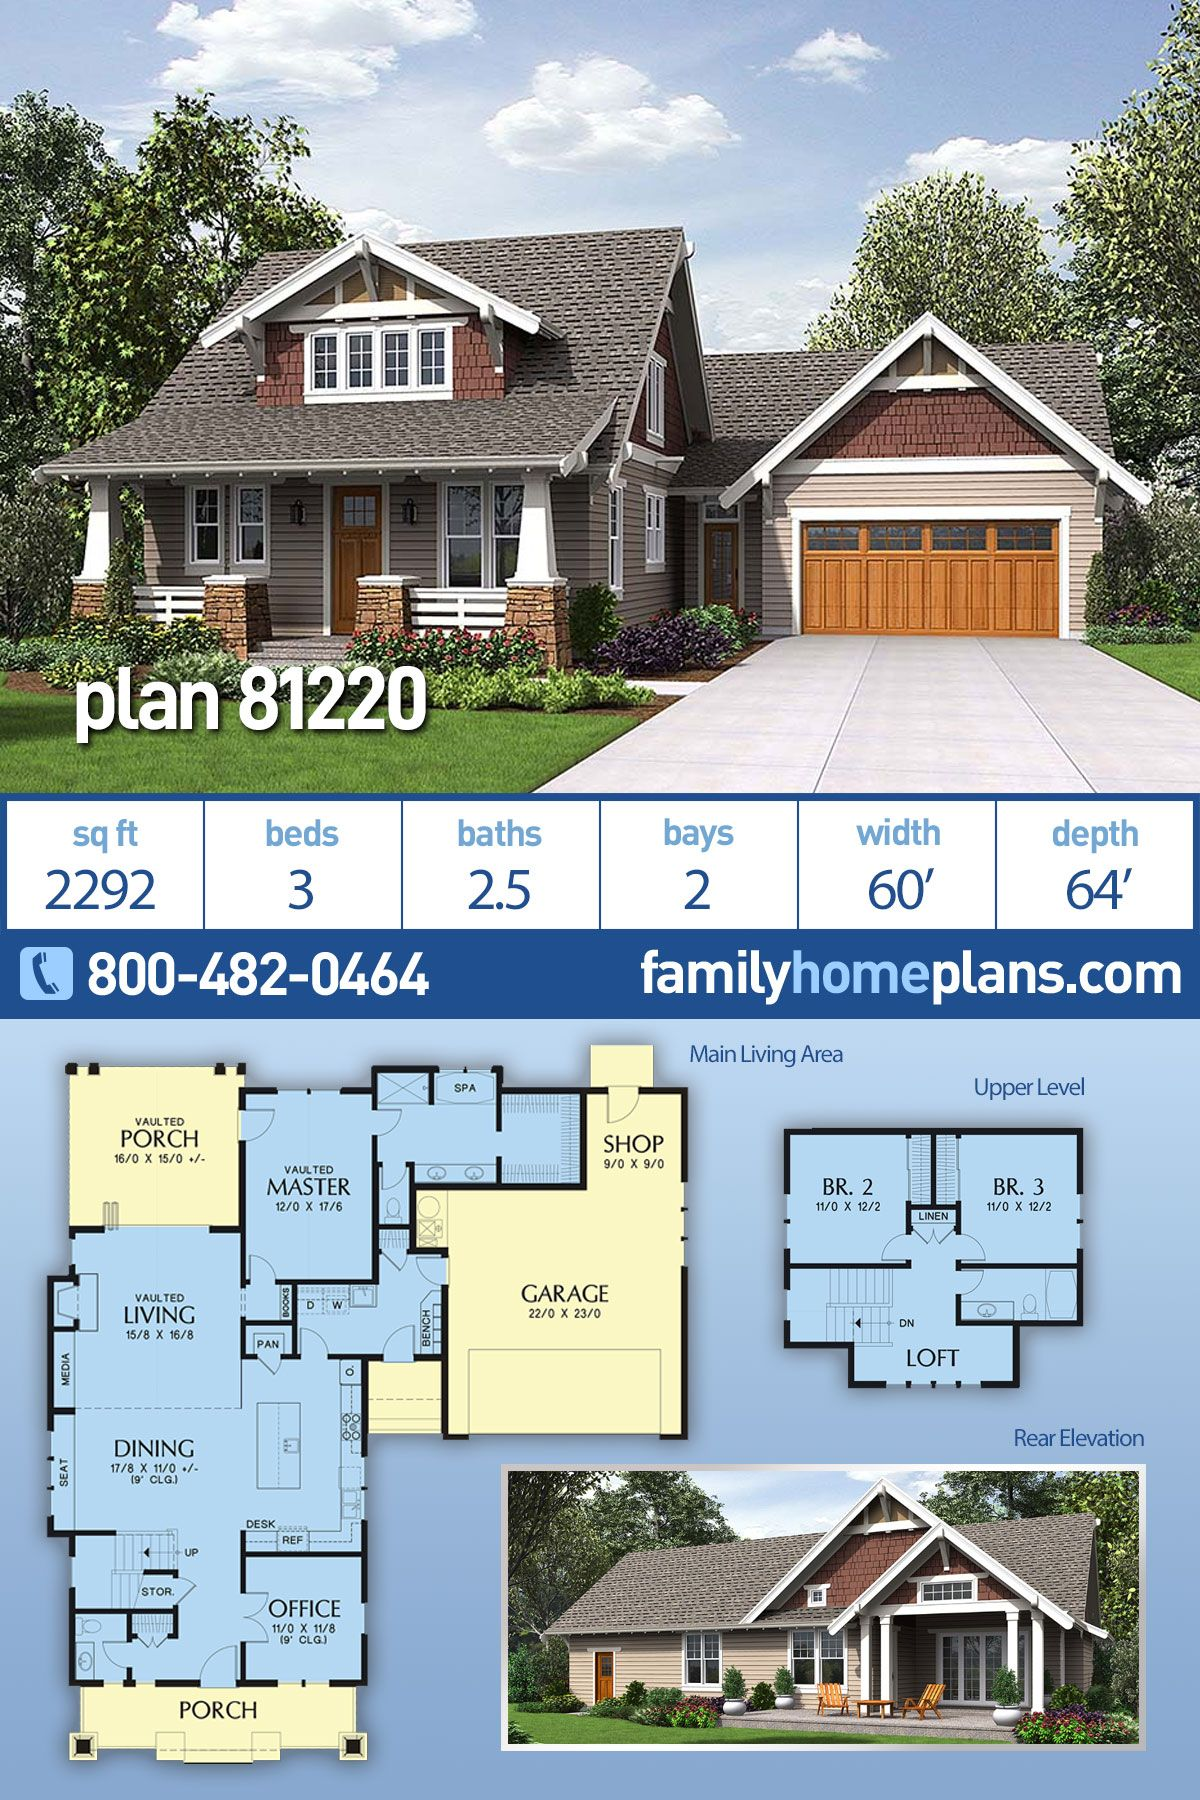 Traditional Style House Plan 81220 With 3 Bed 3 Bath 2 Car Garage Cottage Floor Plans Craftsman Bungalows House Plans